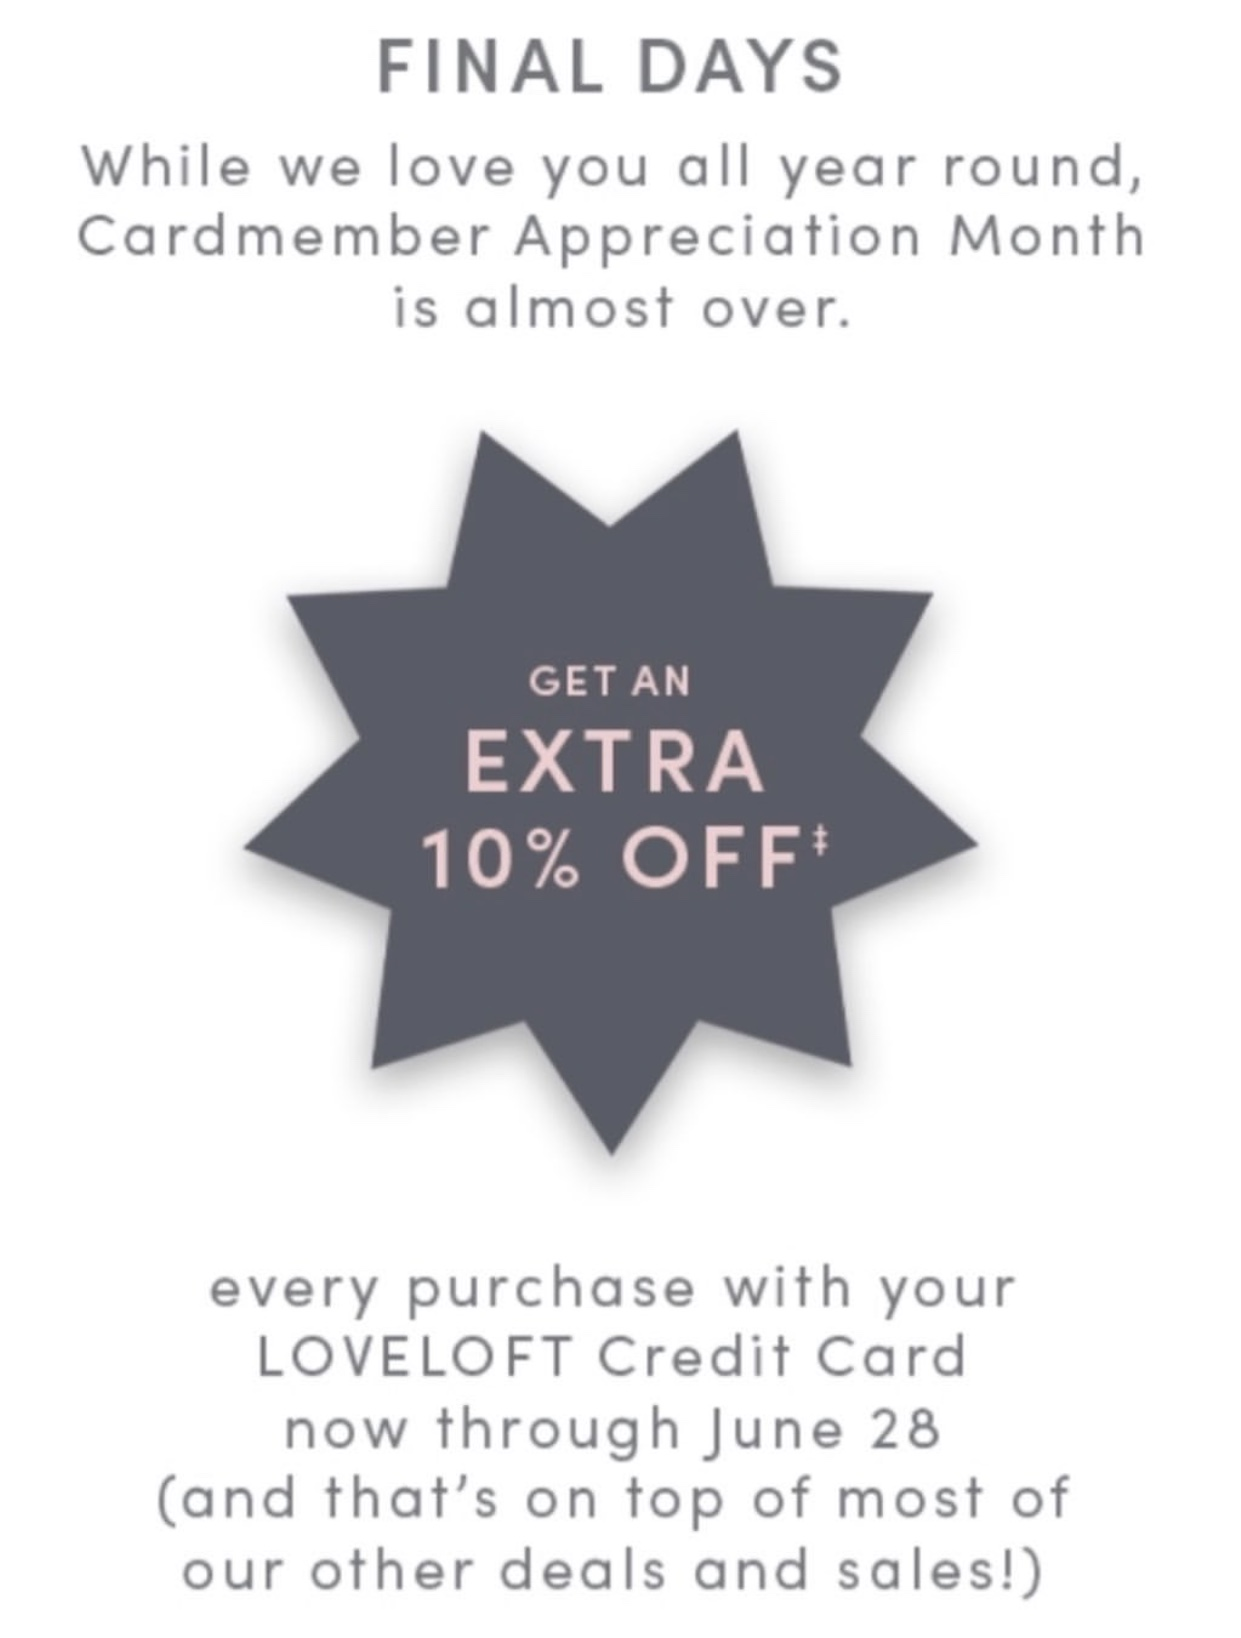 Cardmember Appreciation Month Extra 10% off